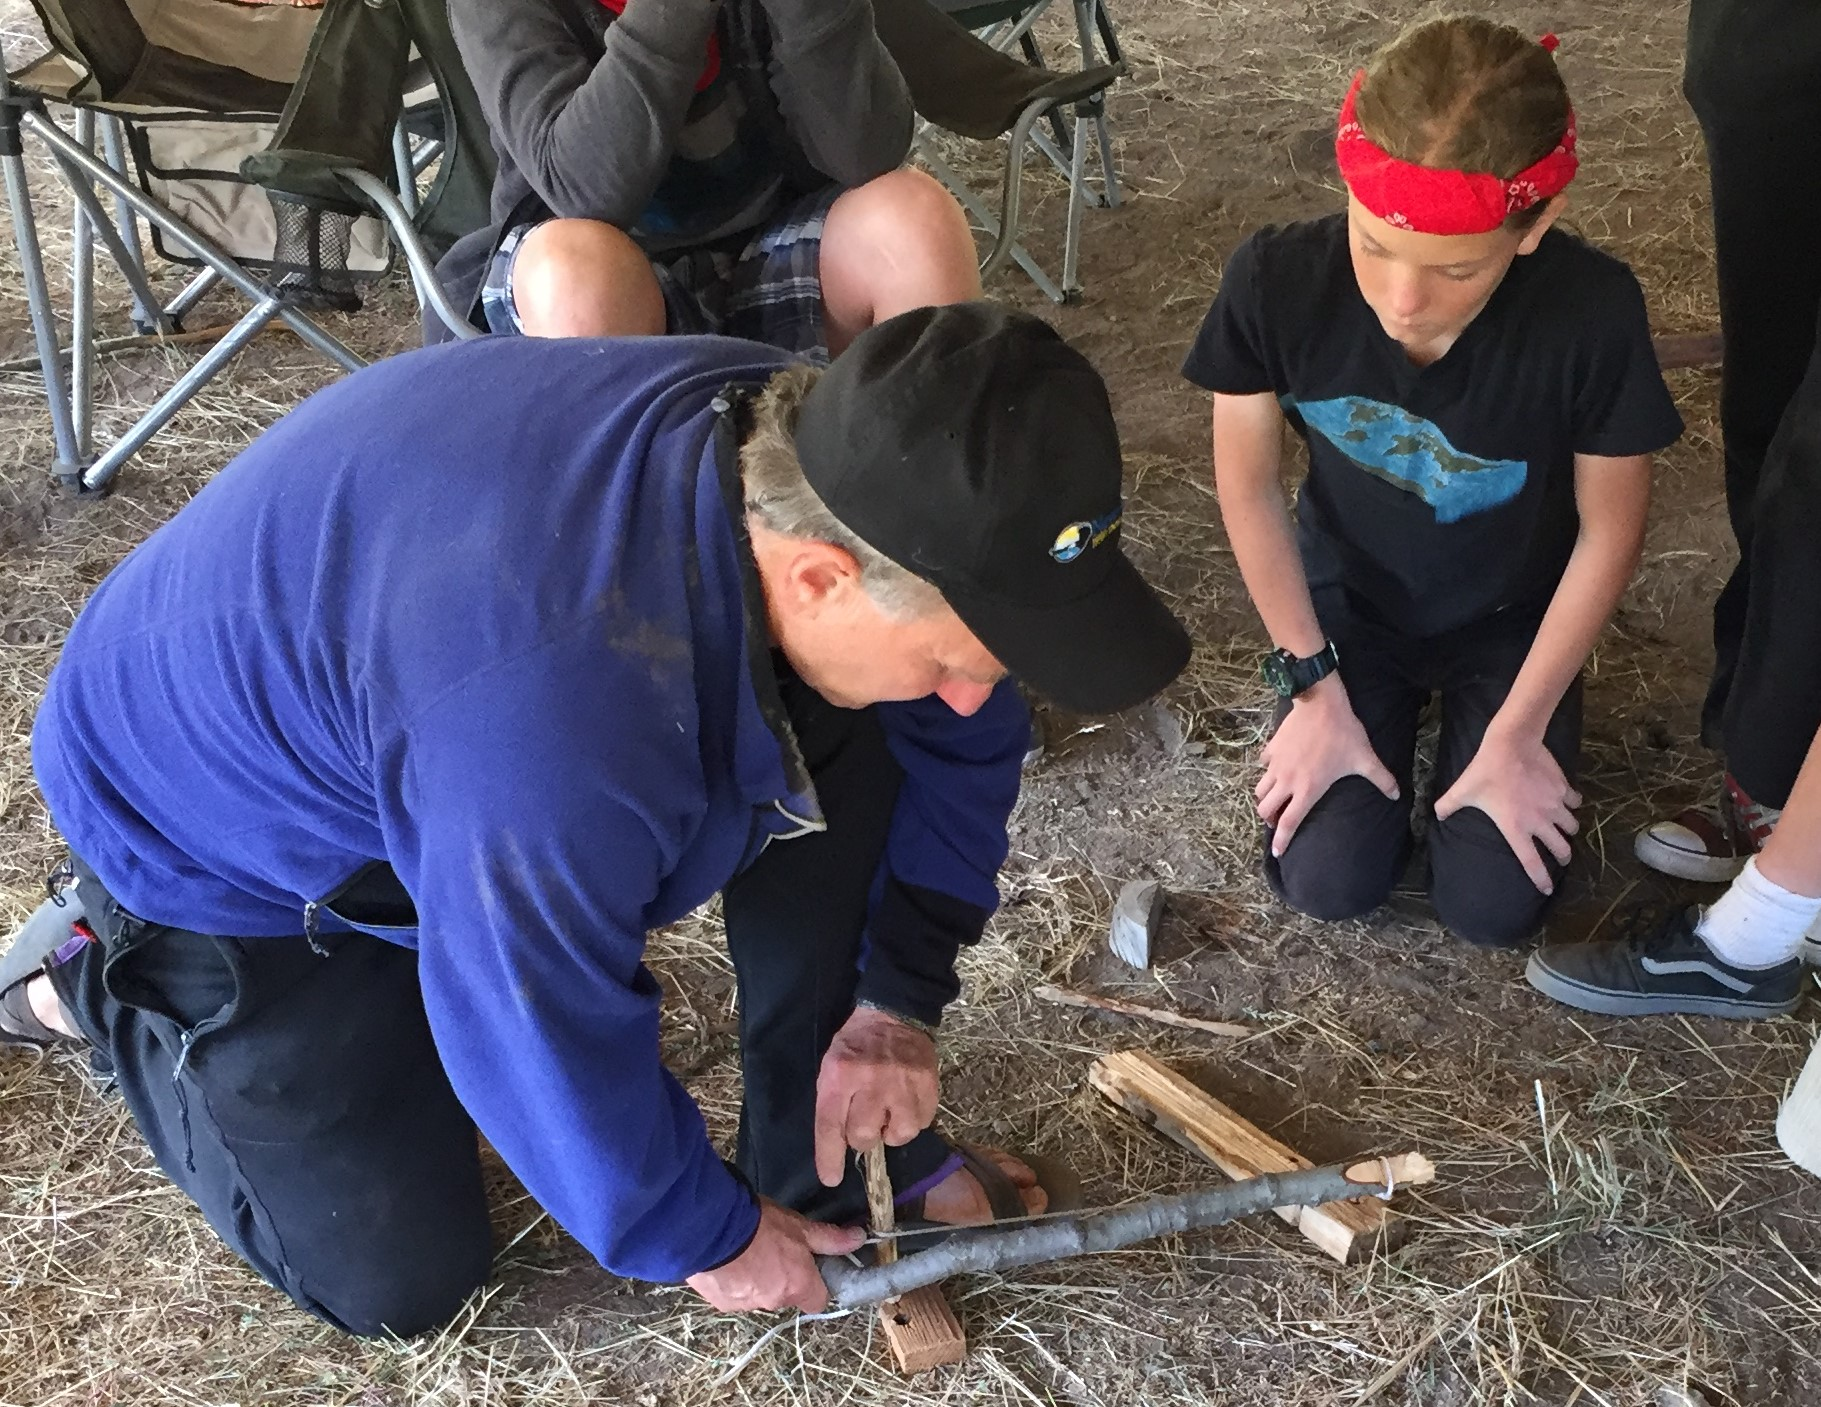 What we offer - We serve southern Oregon with a range of programs including weekend training for ages 9 through 19, high school mentoring, restorative justice circles, and training for mentors.